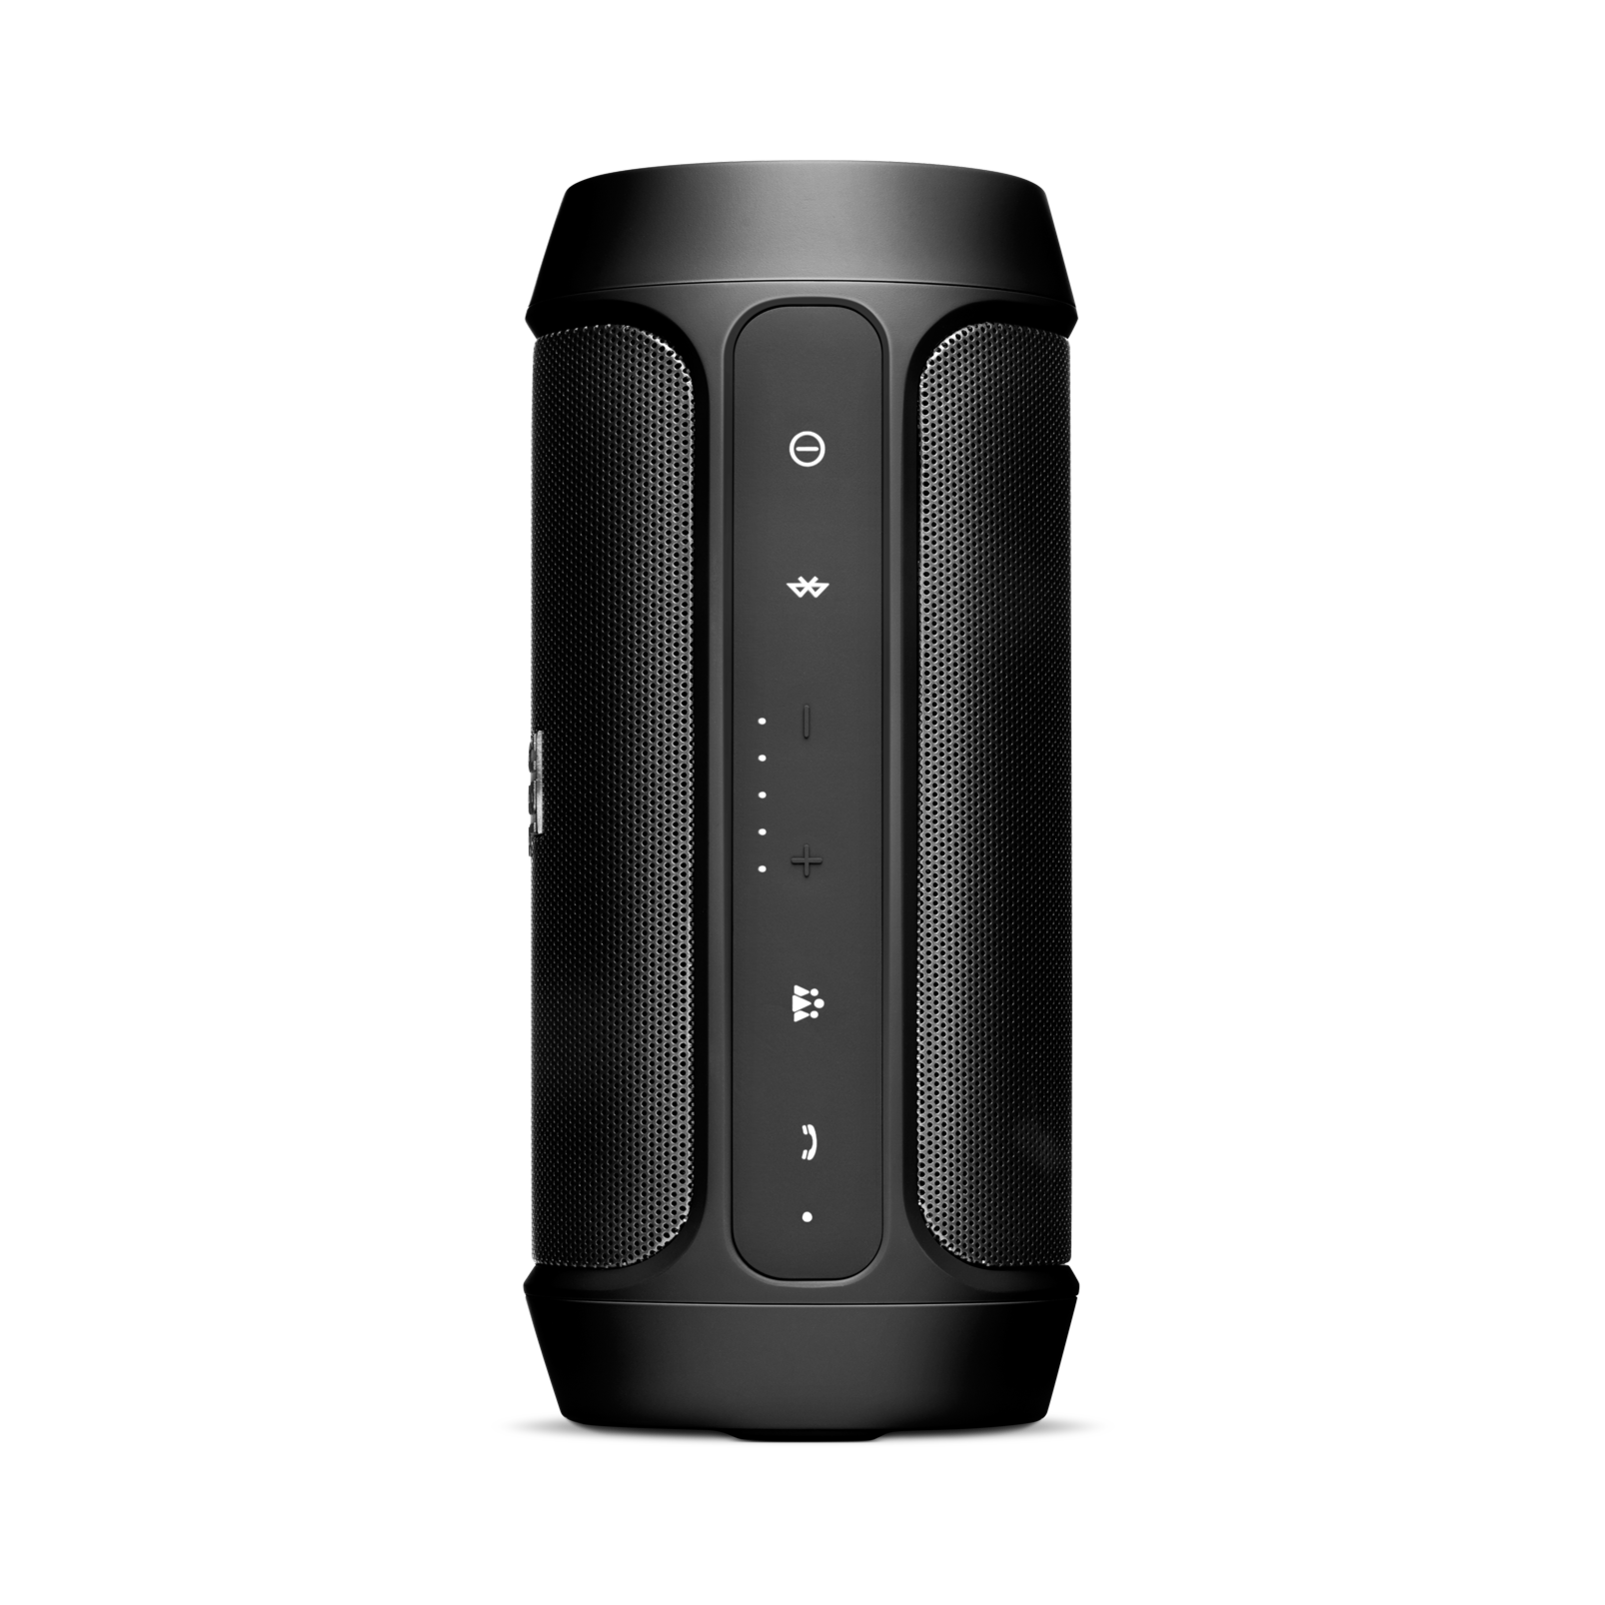 JBL Charge 2 - Black - Portable Bluetooth speaker with massive battery to charge your devices - Detailshot 3